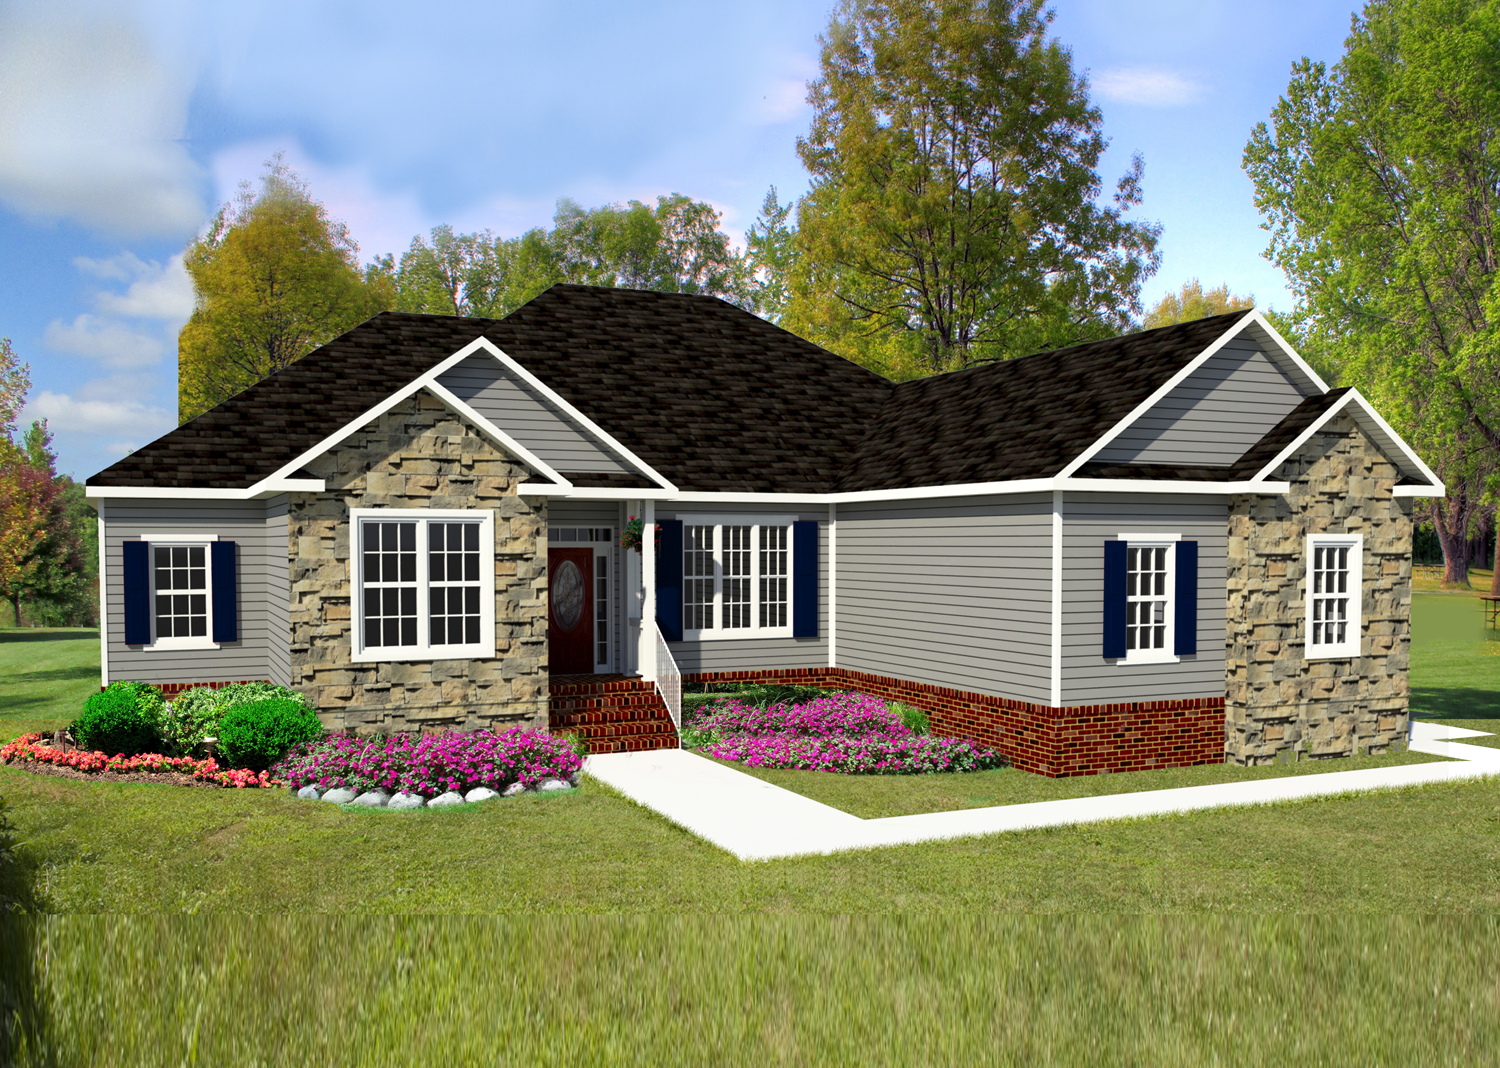 Branton II New Construction Homes for Sale Suffolk VA AB Homes